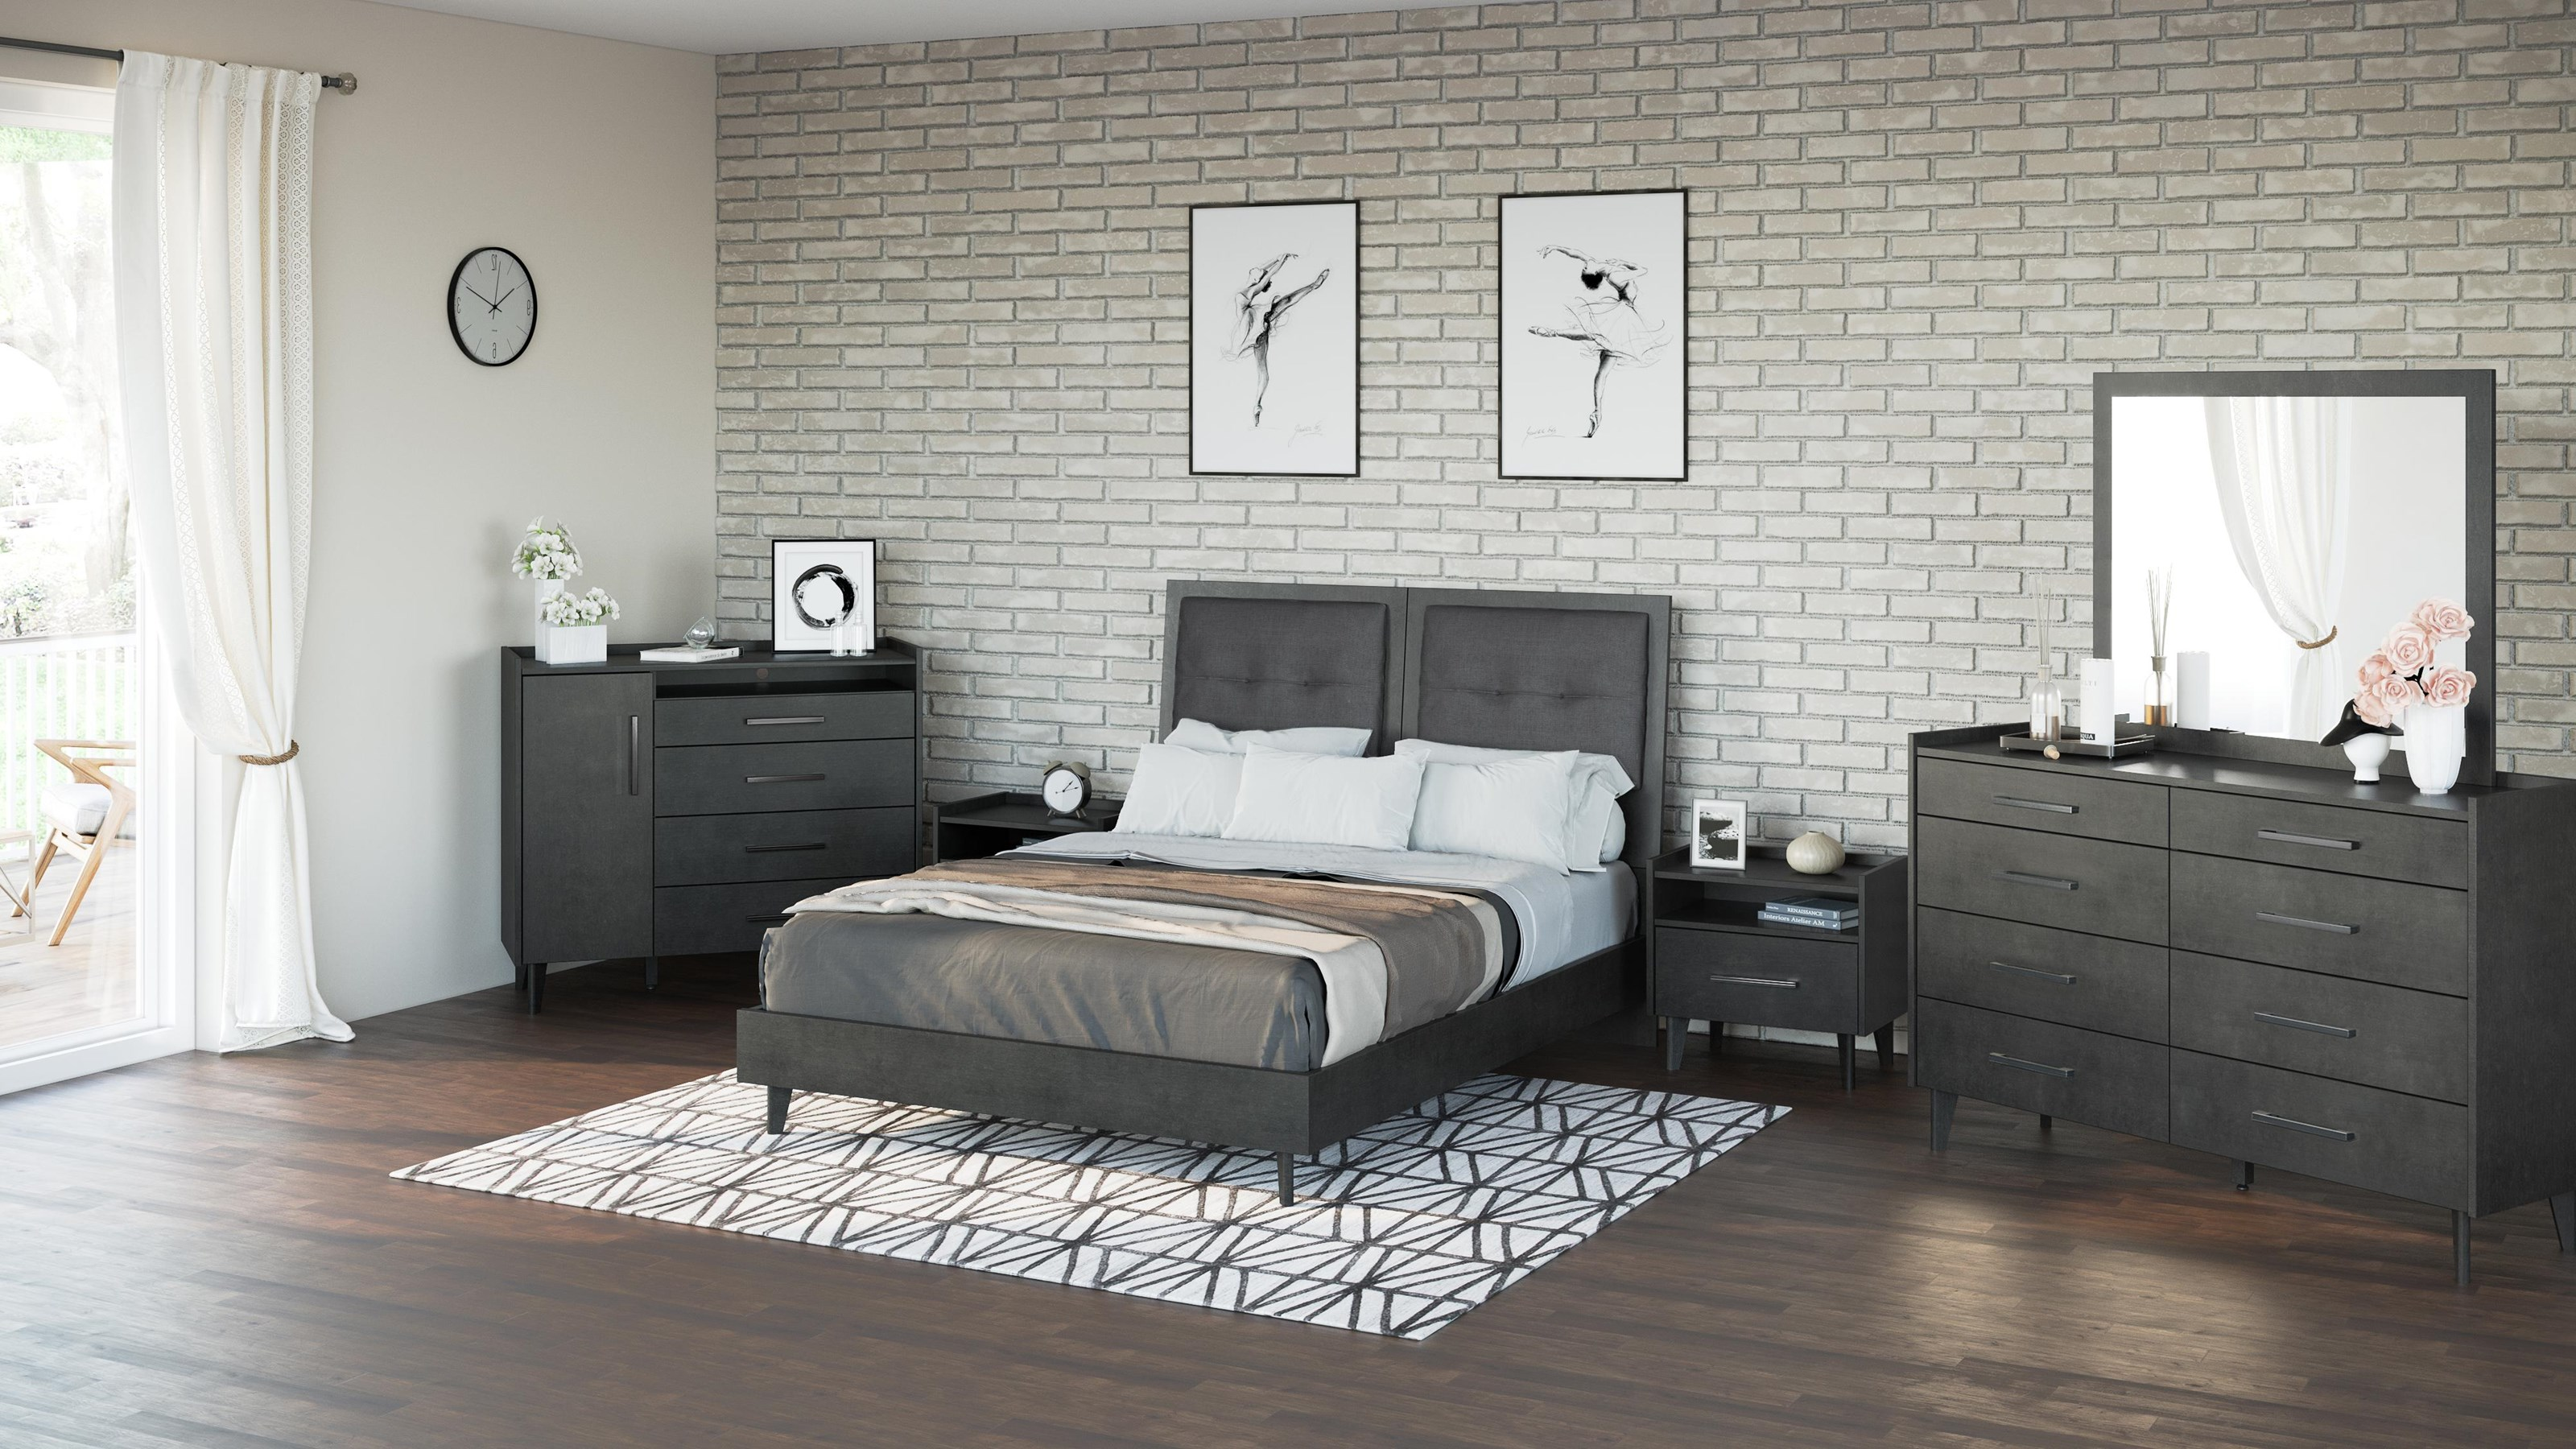 406 4 PC Biltmore Bedroom- Queen Bed, Dre by Defehr at Stoney Creek Furniture